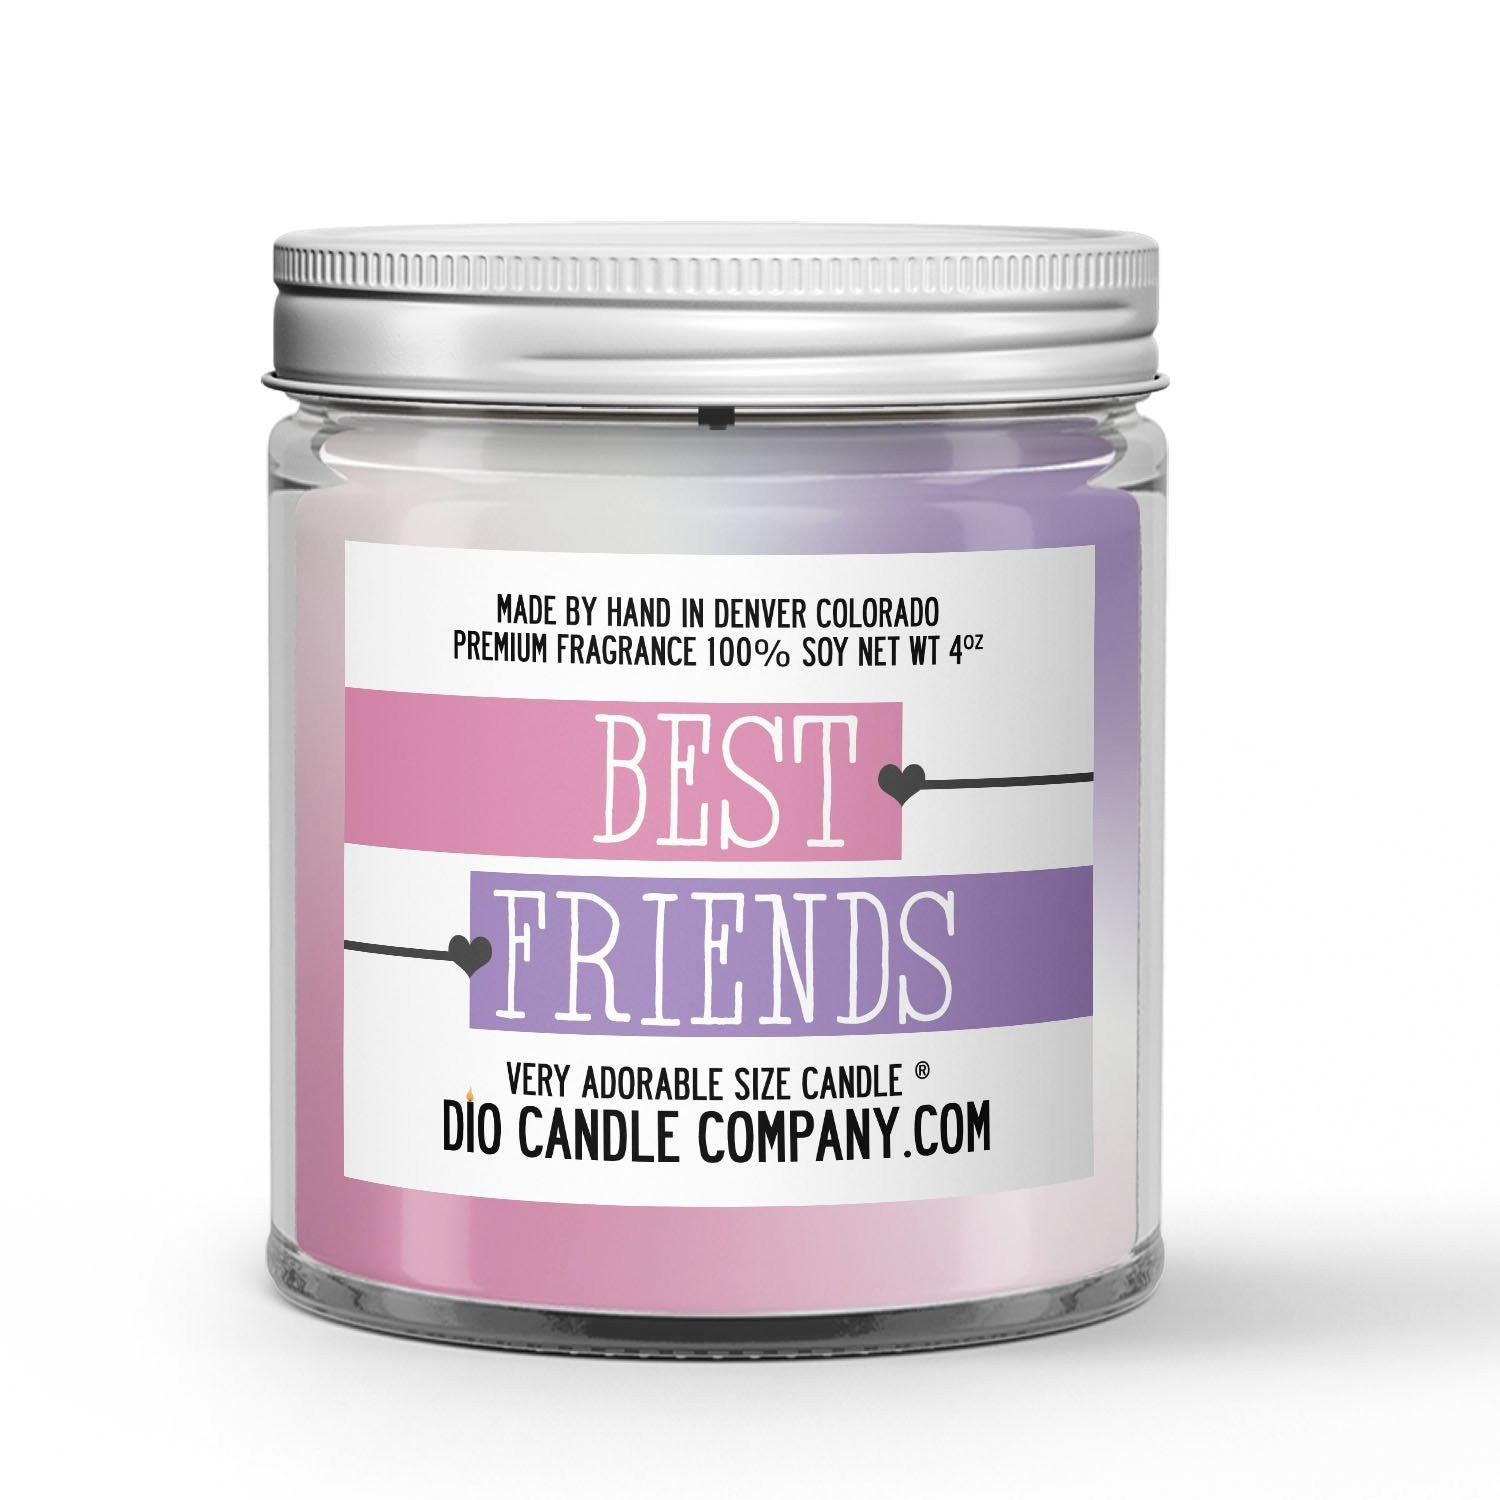 Best Friends Candle Peach - Violets - Musk Scented - Dio Candle Company